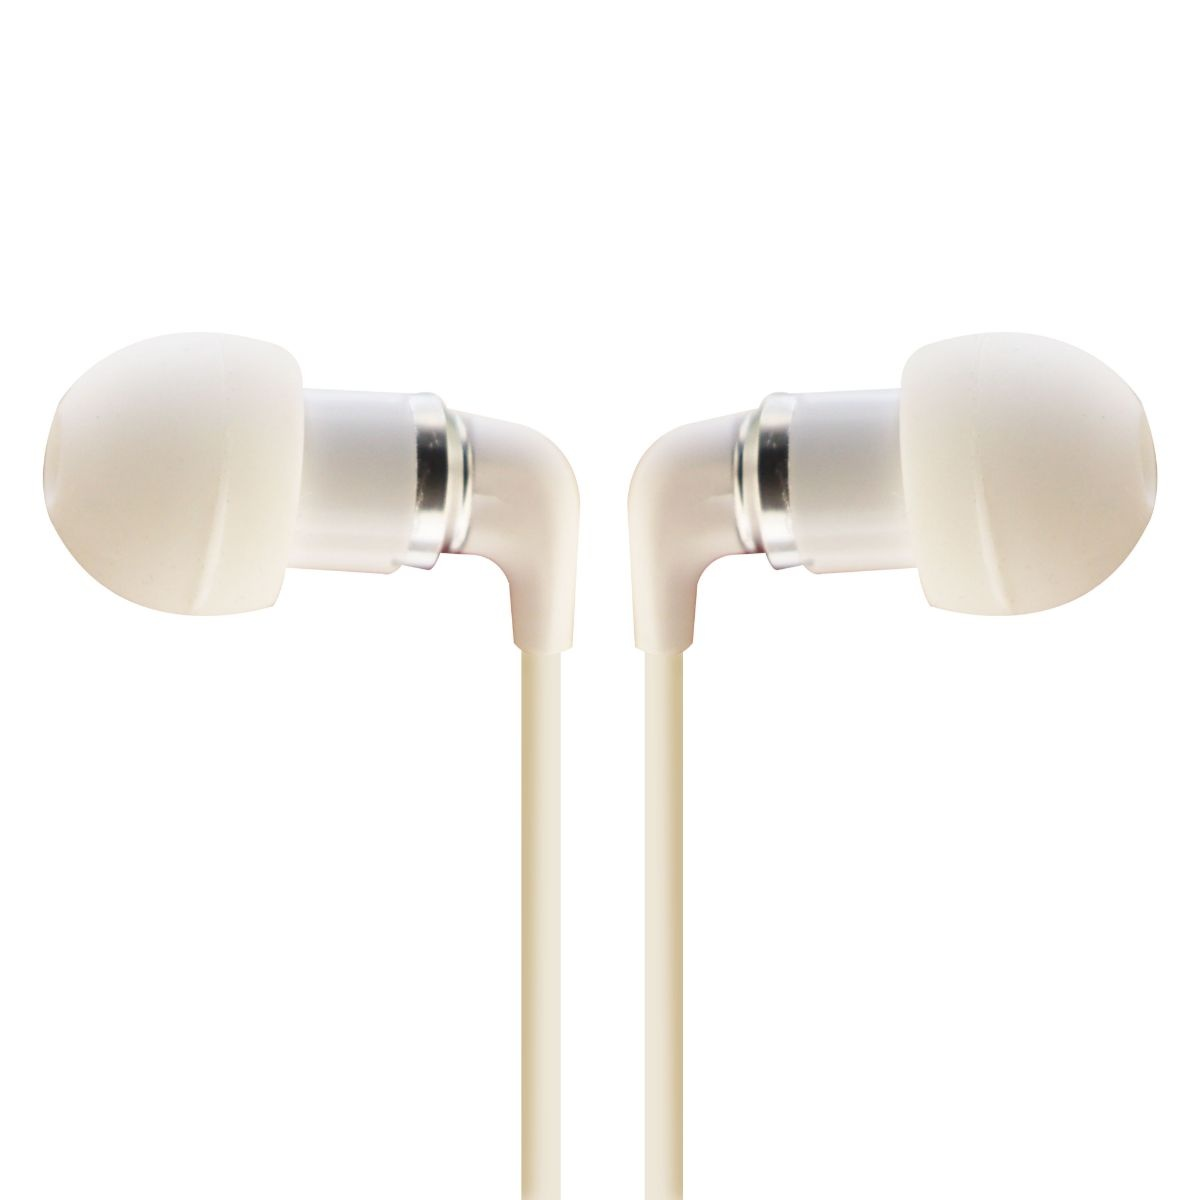 Sentry Ultra Pro Earbuds with Mic and Deluxe Case - White - H7002